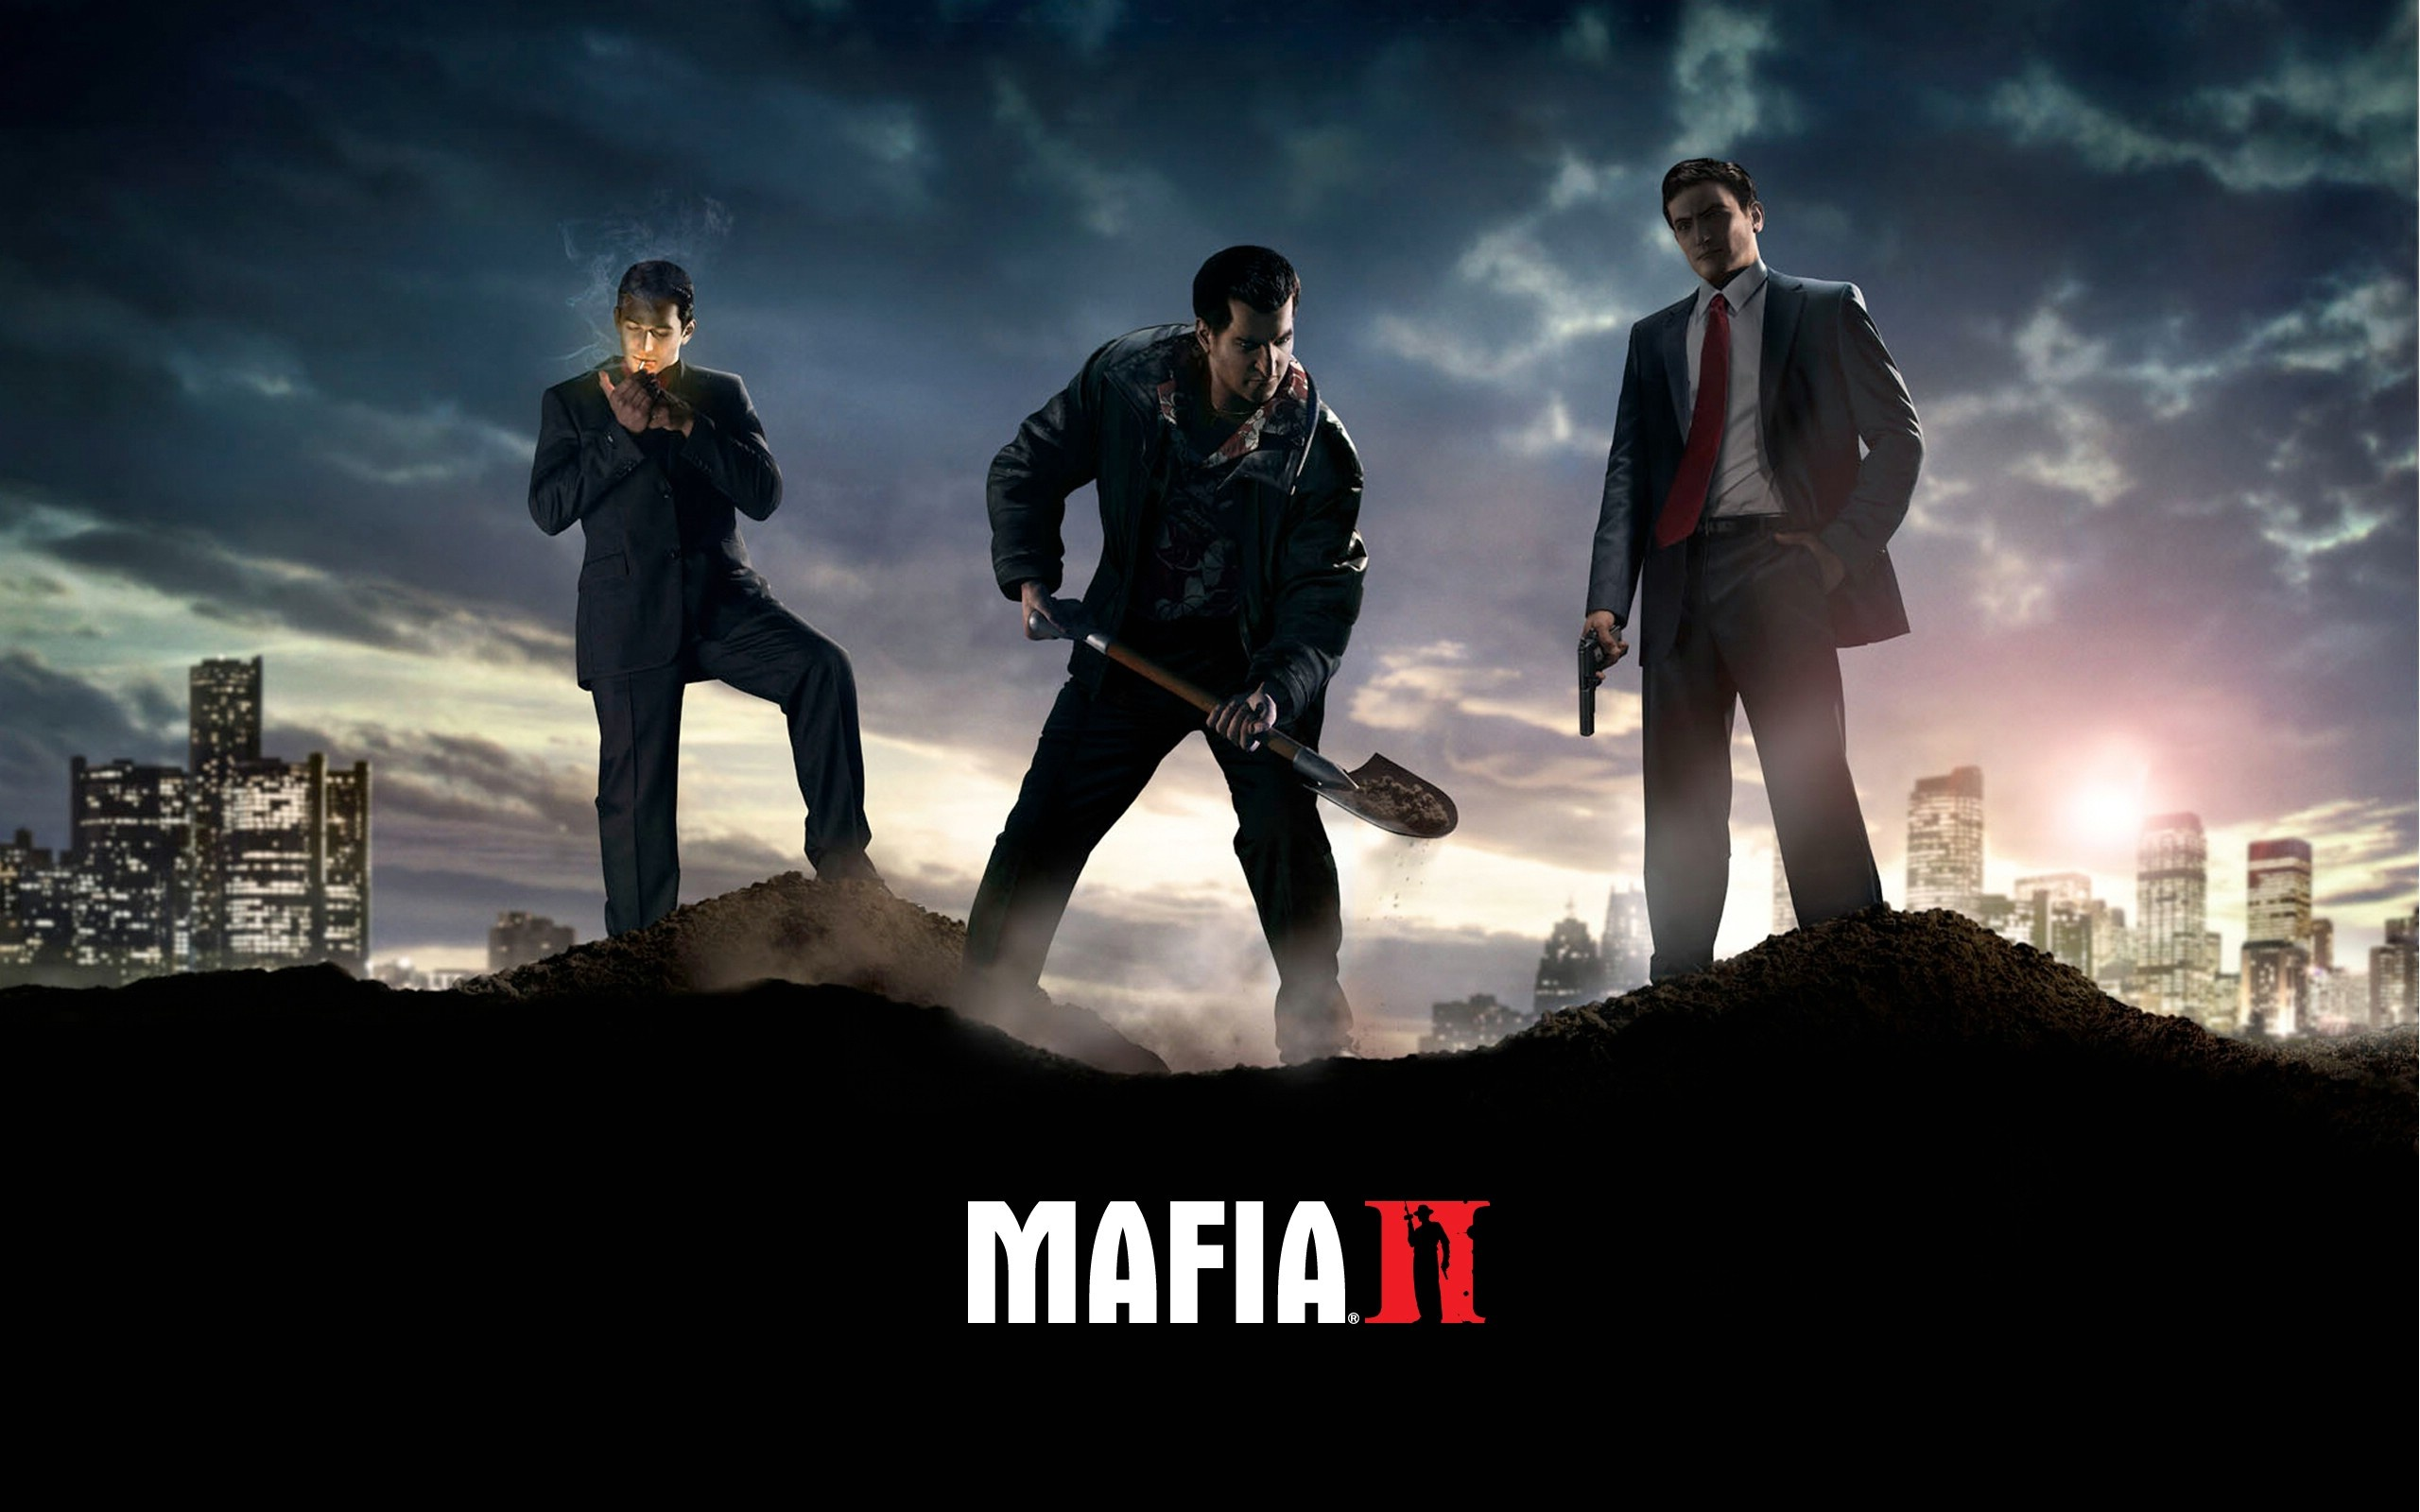 44 Mafia 2 Hd Wallpapers On Wallpapersafari